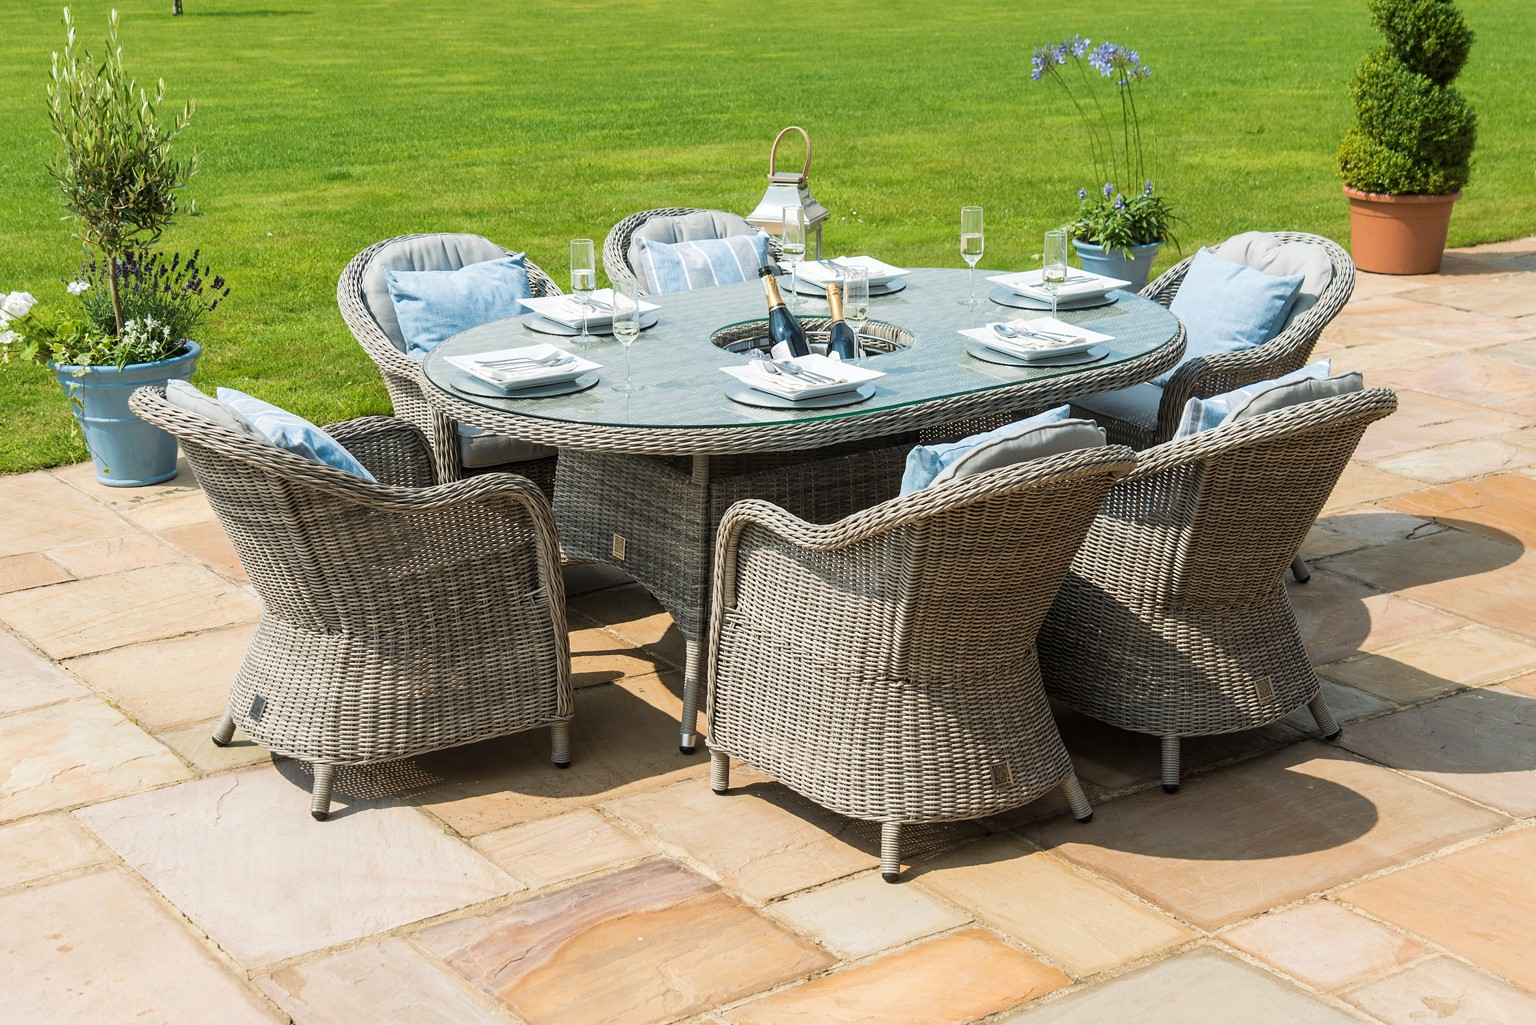 Maze rattan Oxford 6 seat Oval garden Furniture Set With Ice Bucket